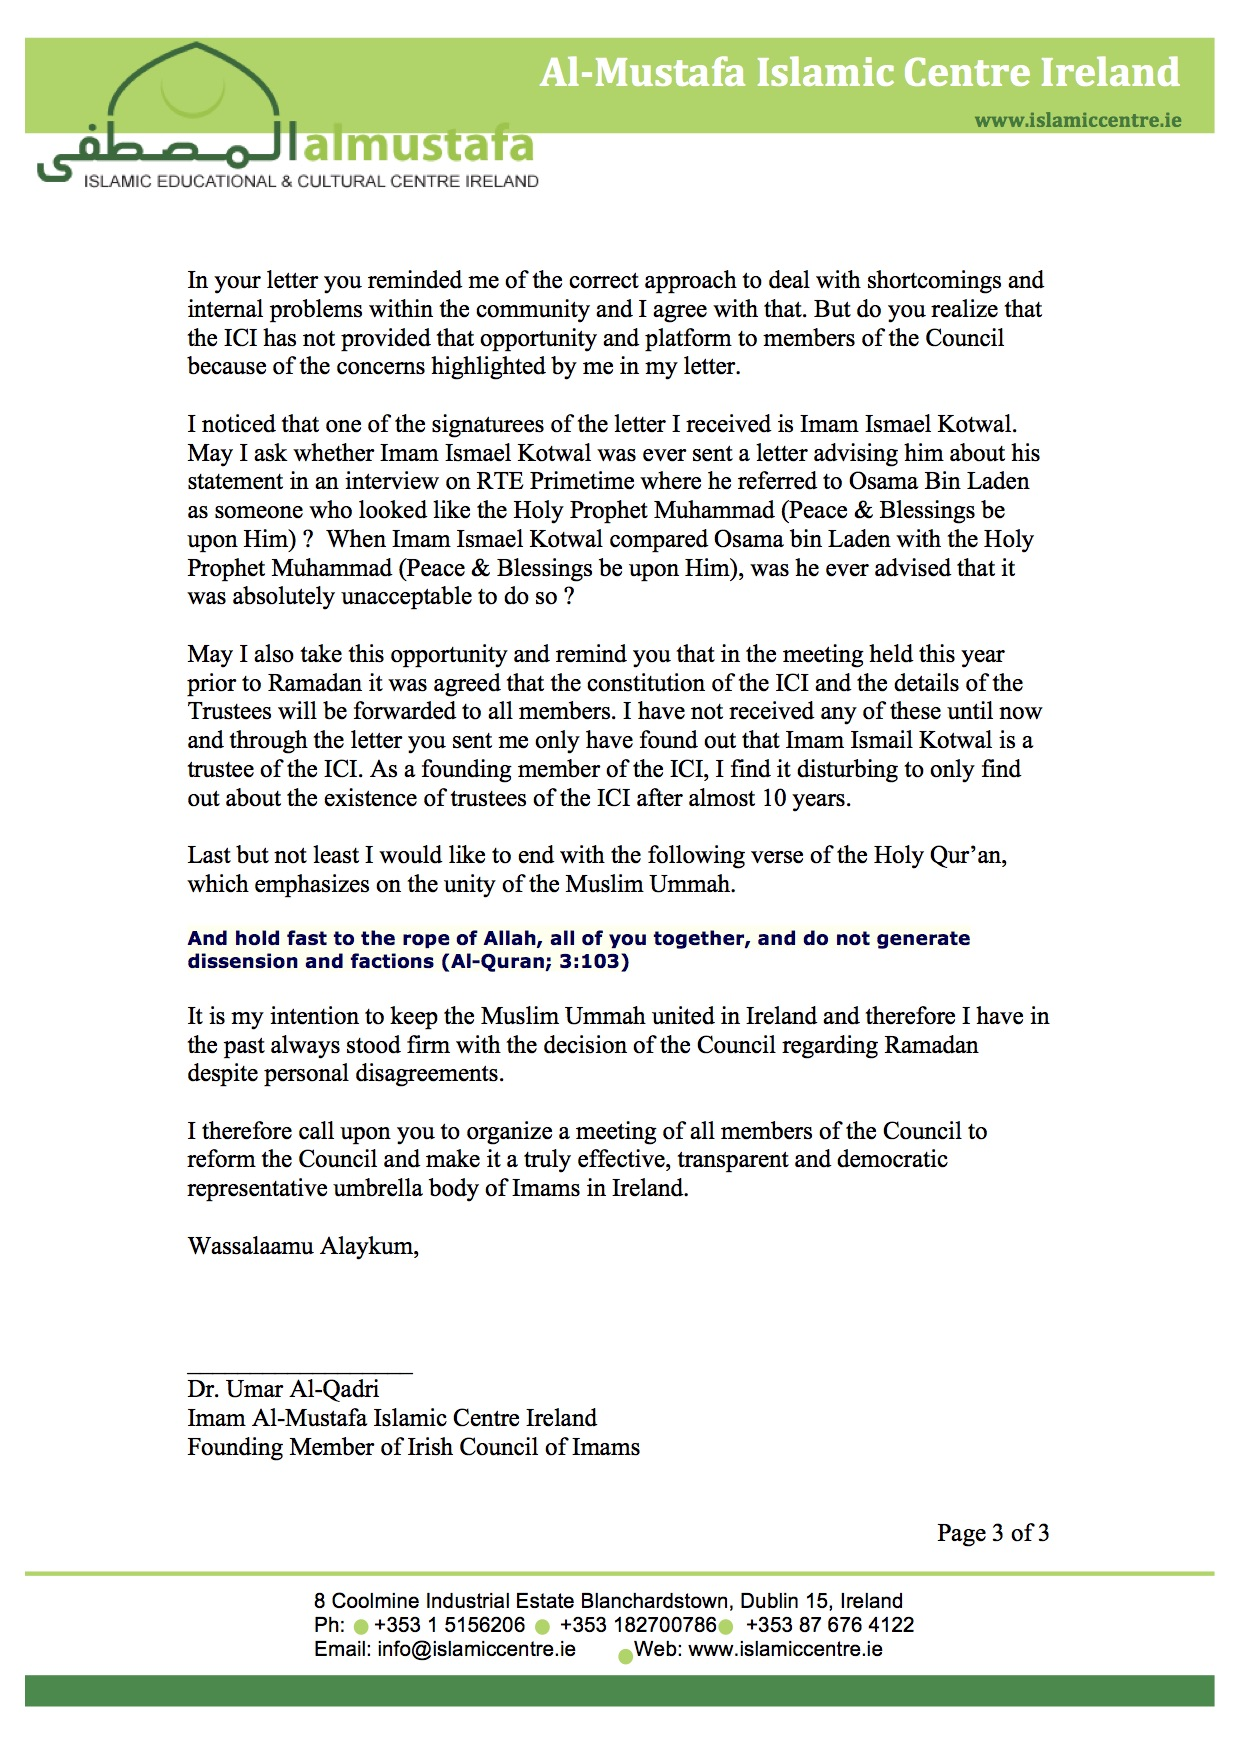 imam resigns from the irish council of imams